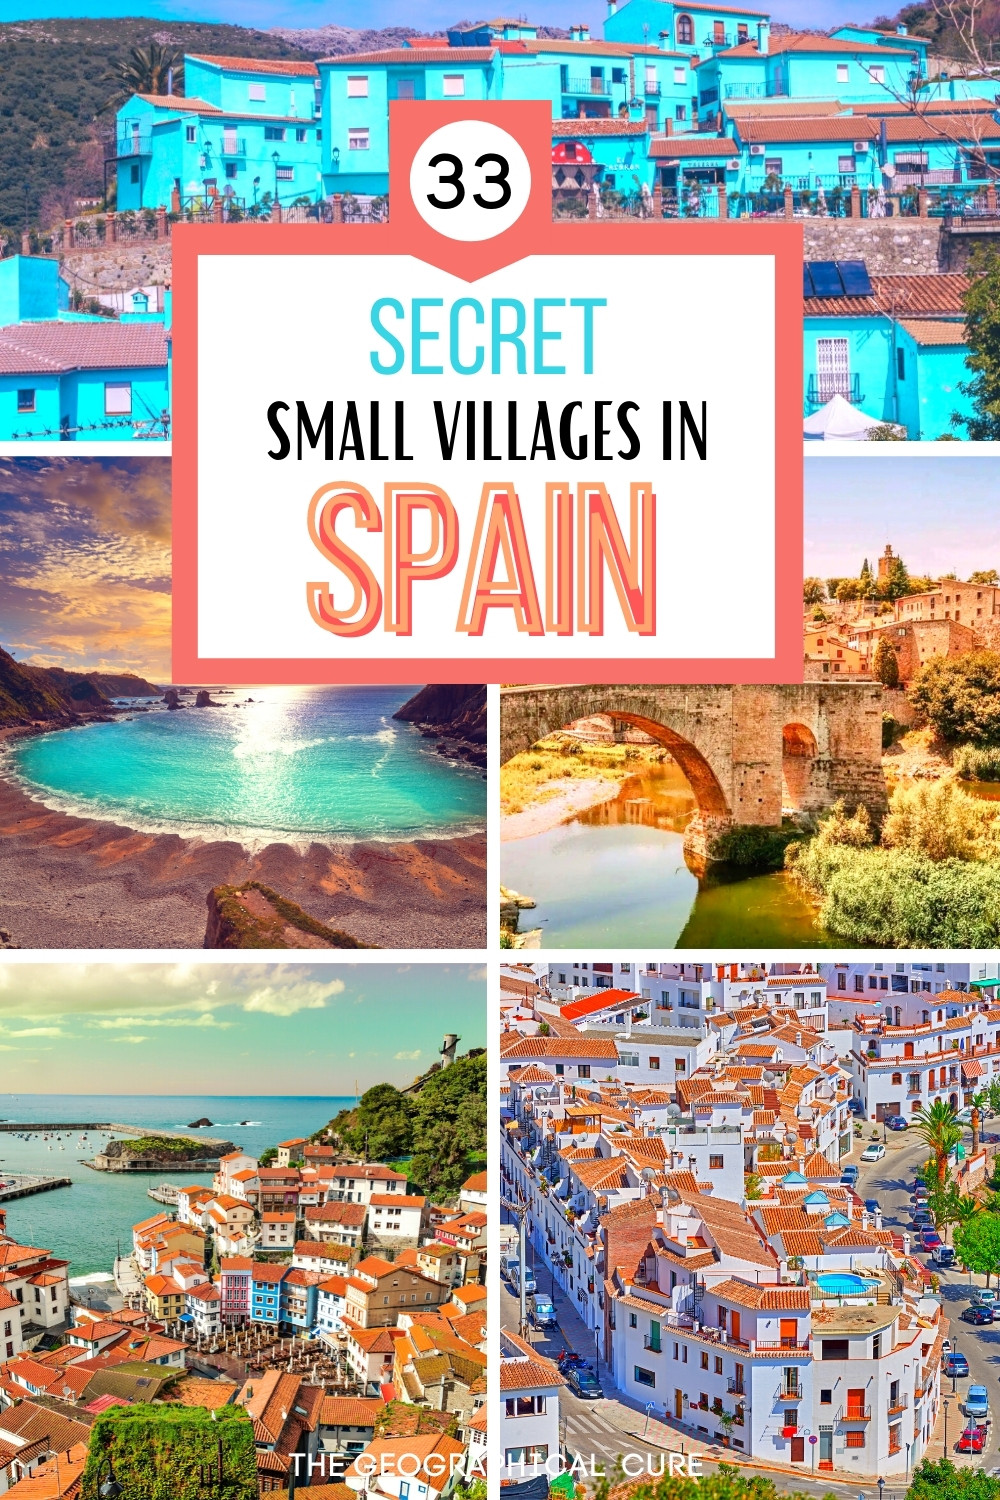 33 secret hidden gems in Spain